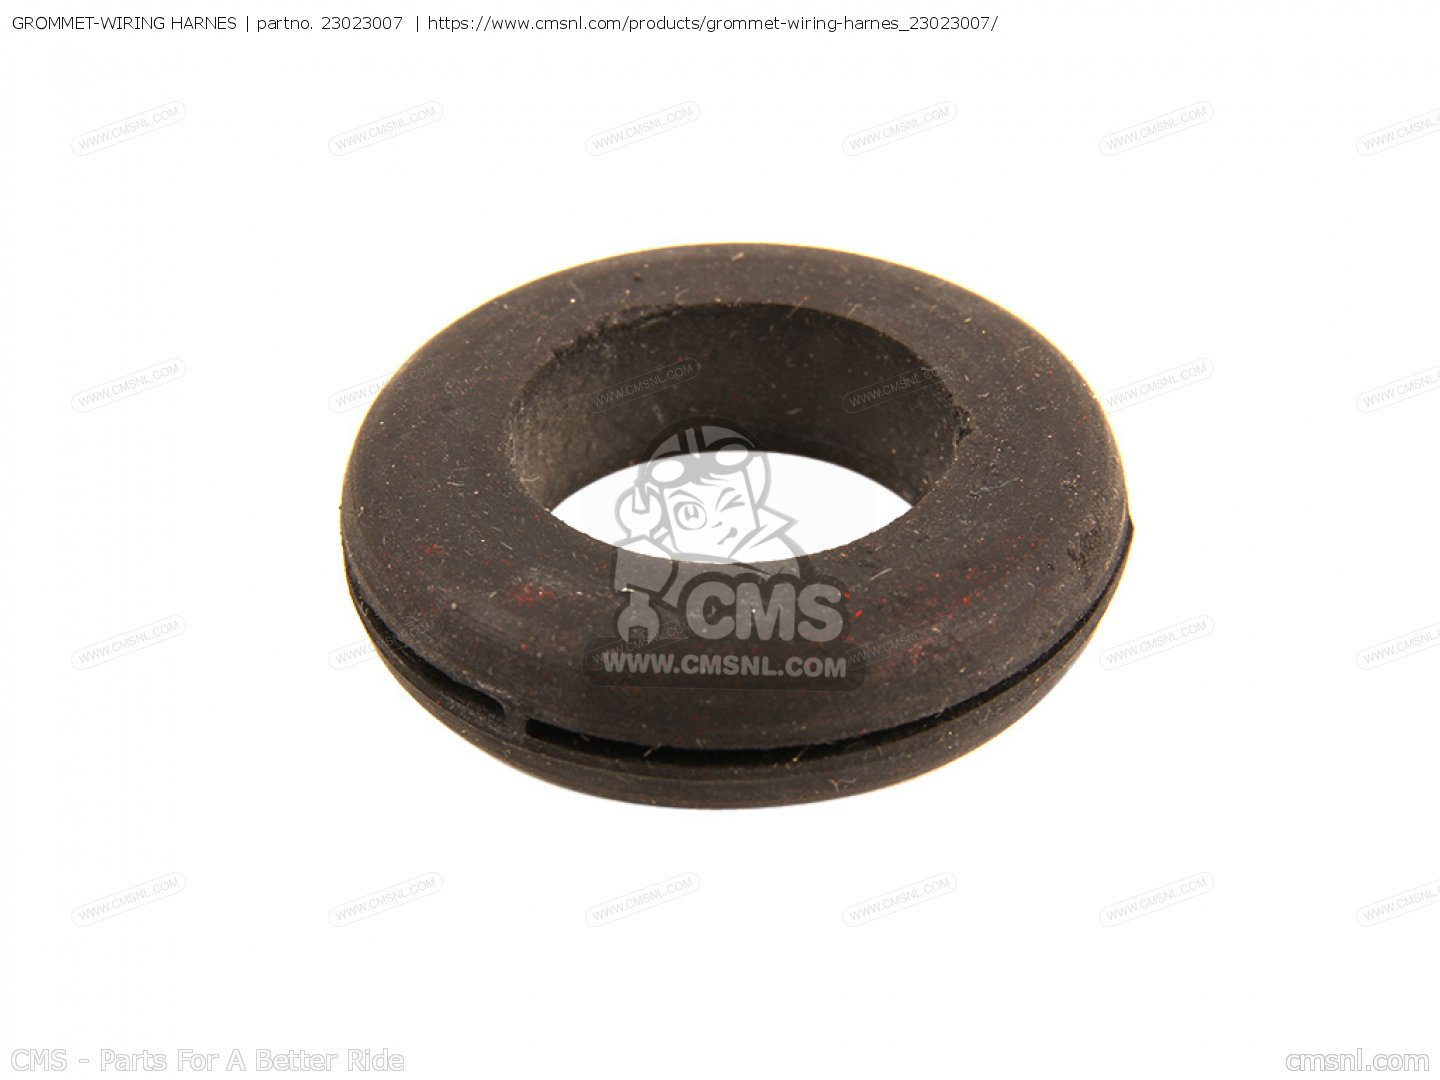 Grommet Wiring Harnes Fits G3ss 1969 Usa Canada Order At Cmsnl Harness Grommets Photo